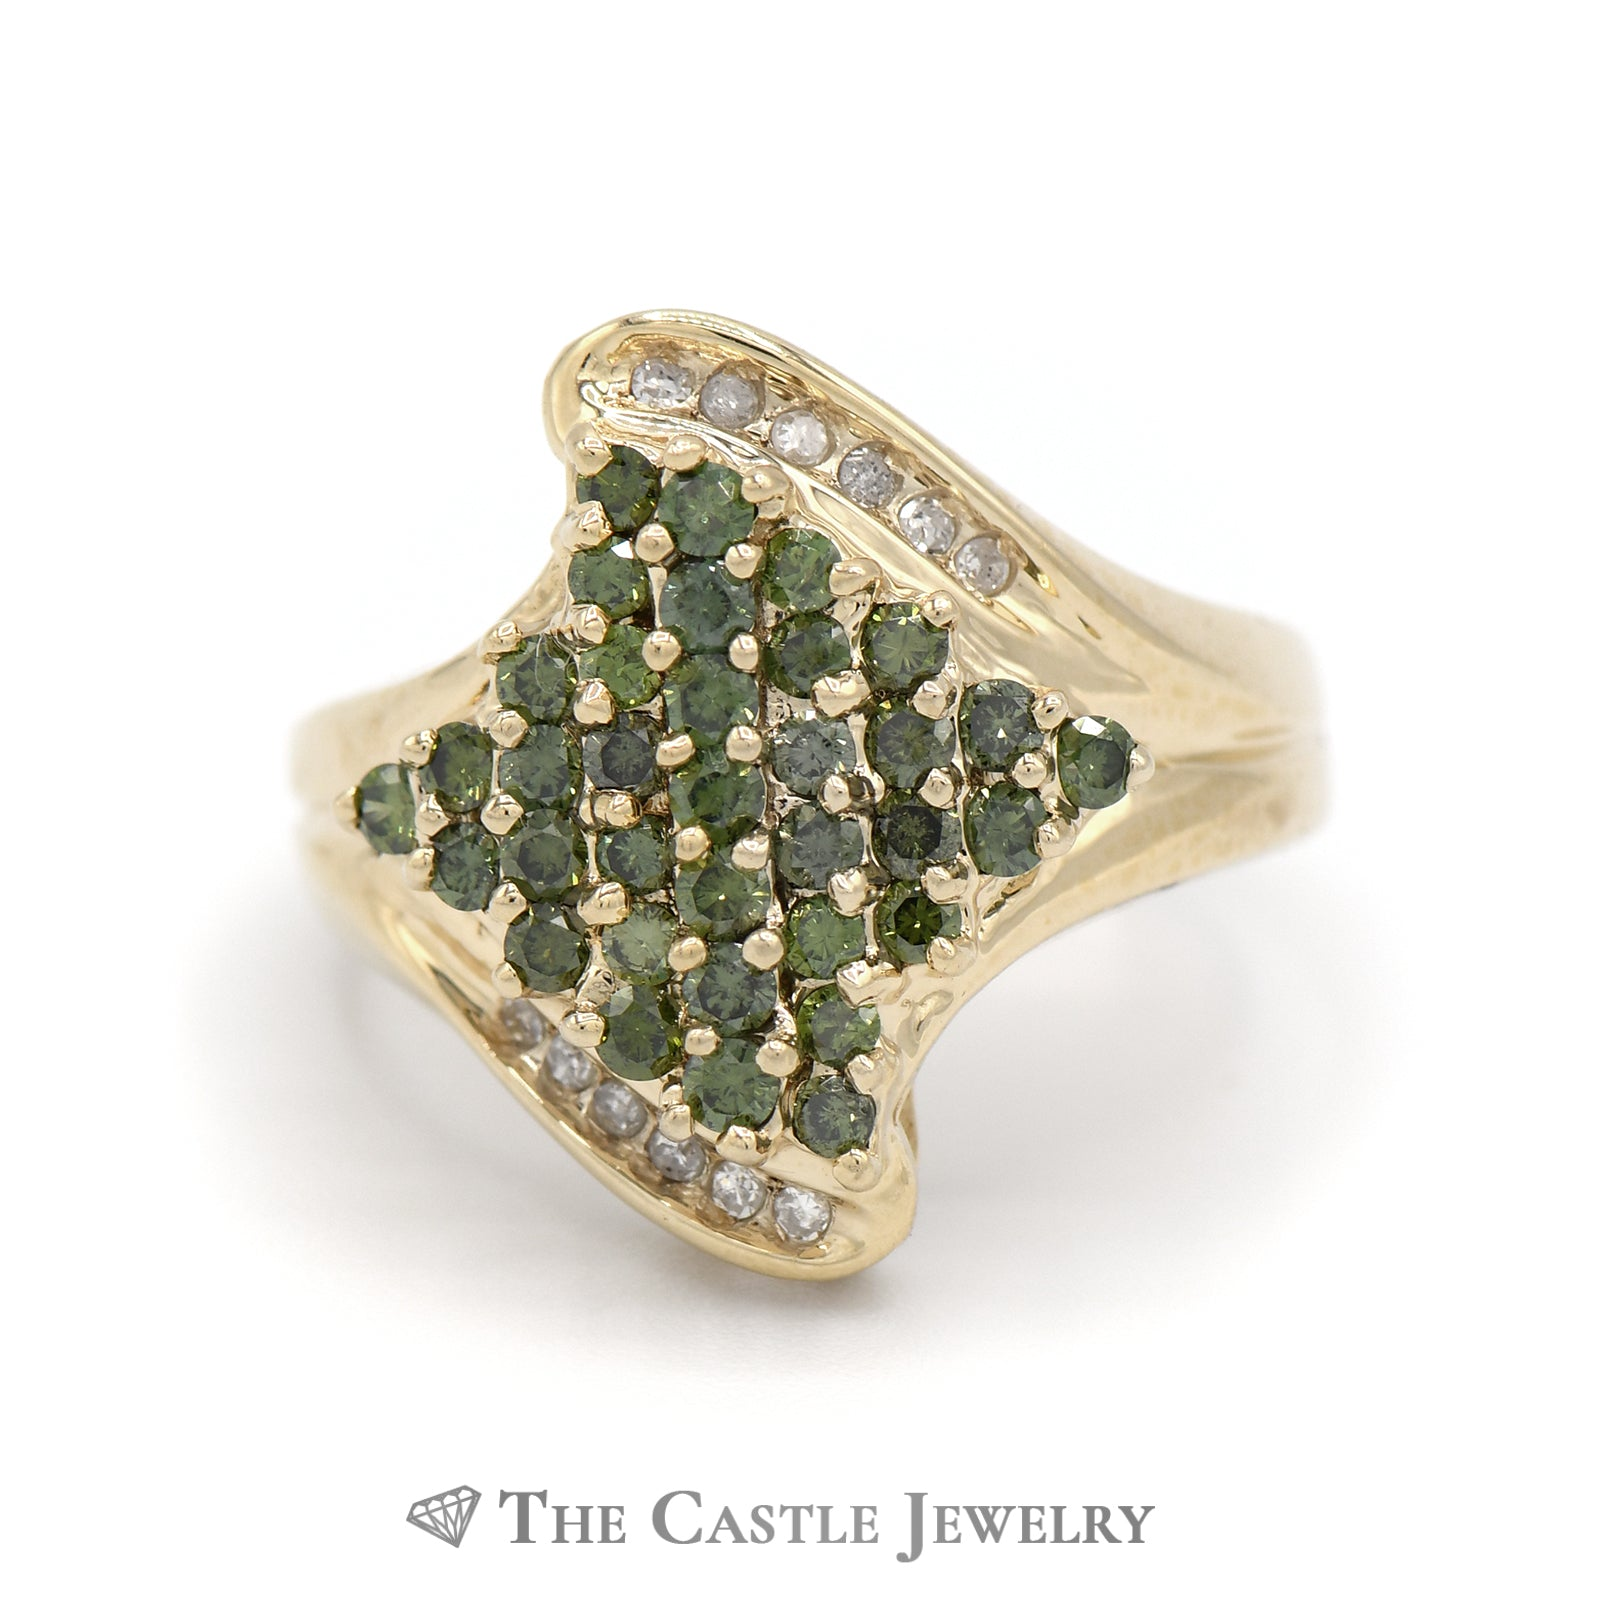 White And Green 1cttw Diamond Cluster Ring in 14K Yellow Gold